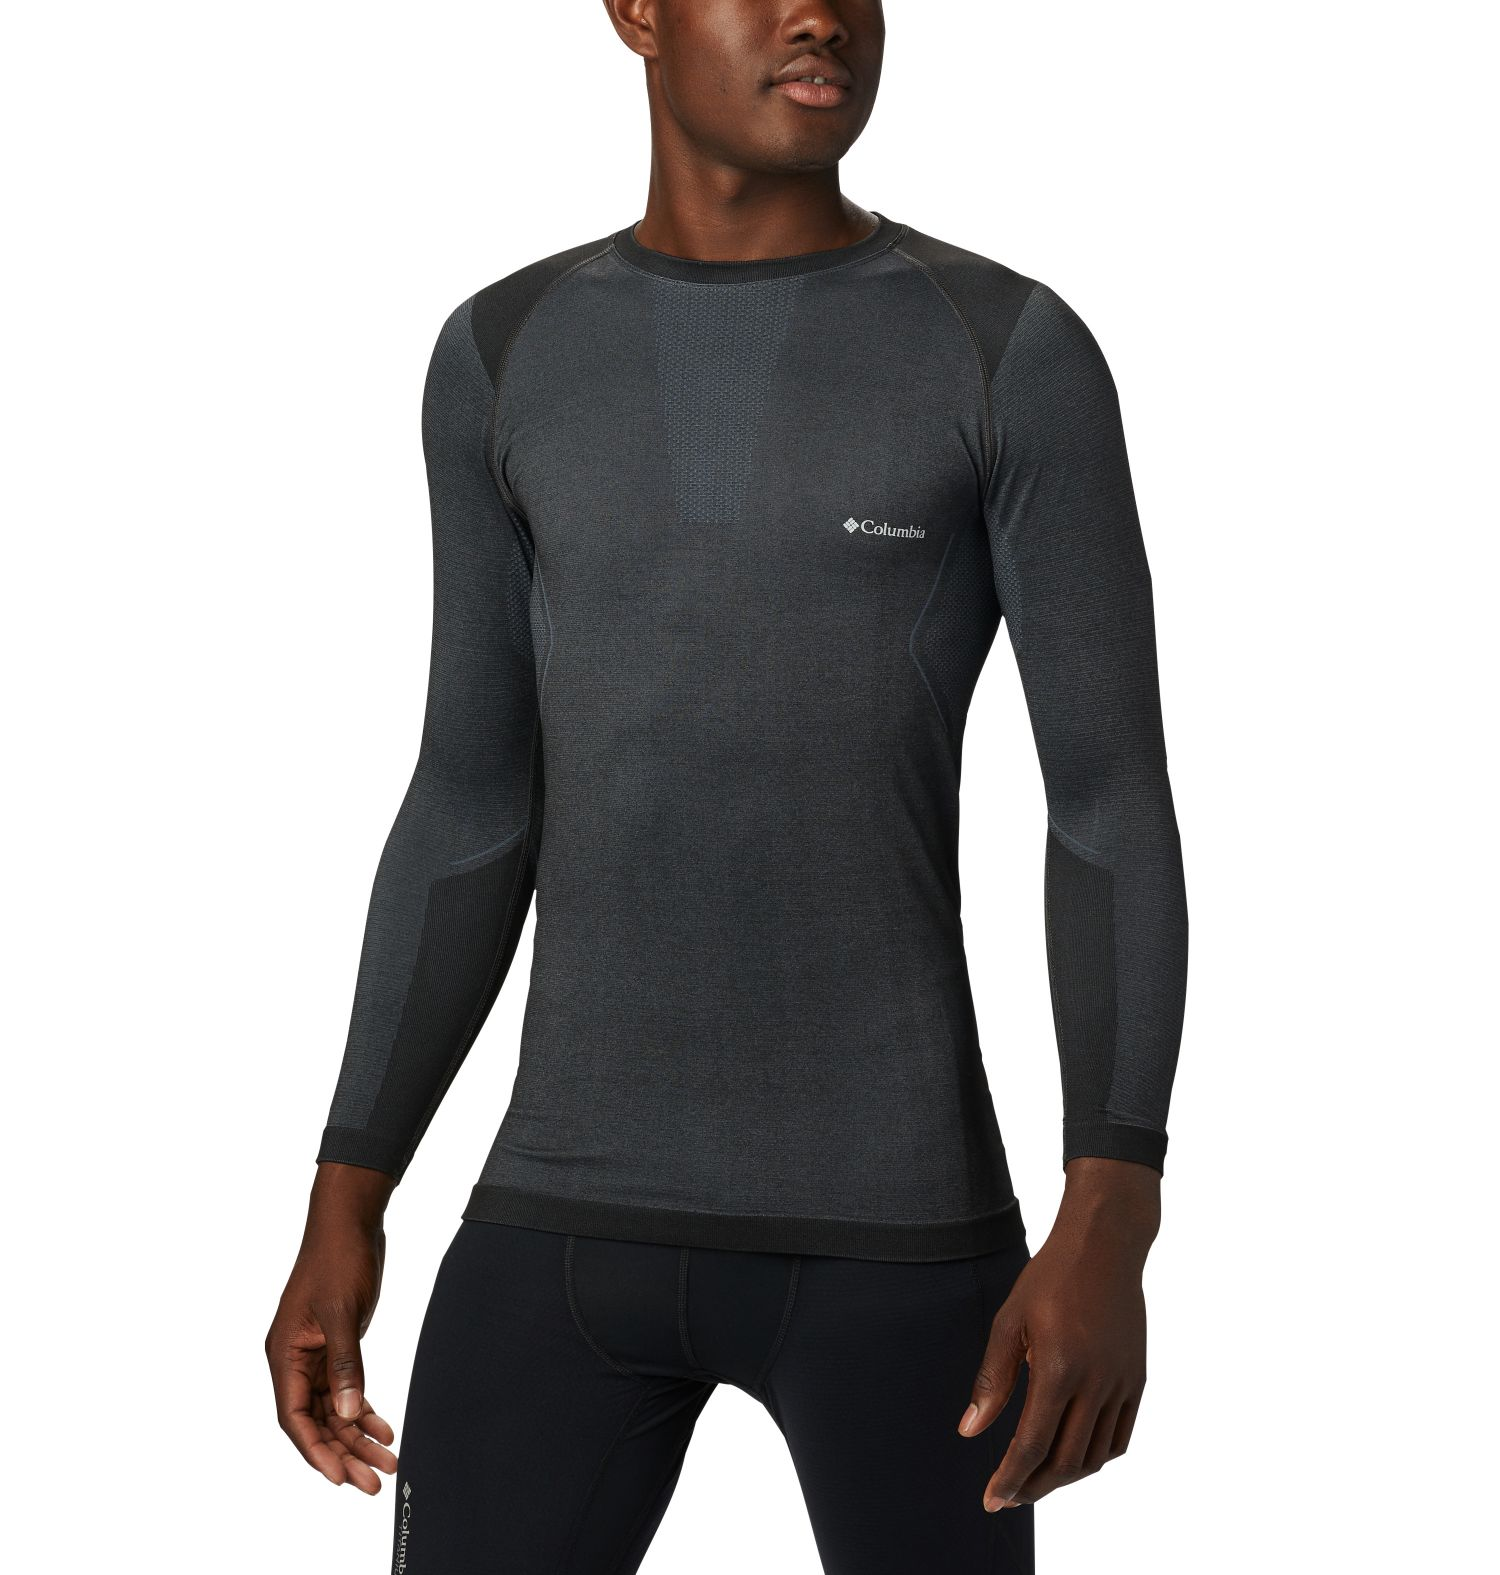 CAMISETA MANGA LARGA  M ENGINEERED LONG SLEEVE CREW 58% NYLON 34% POLYESTER 8% ELASTANE Omni-WICK ANTIMICROBIAL BLACK